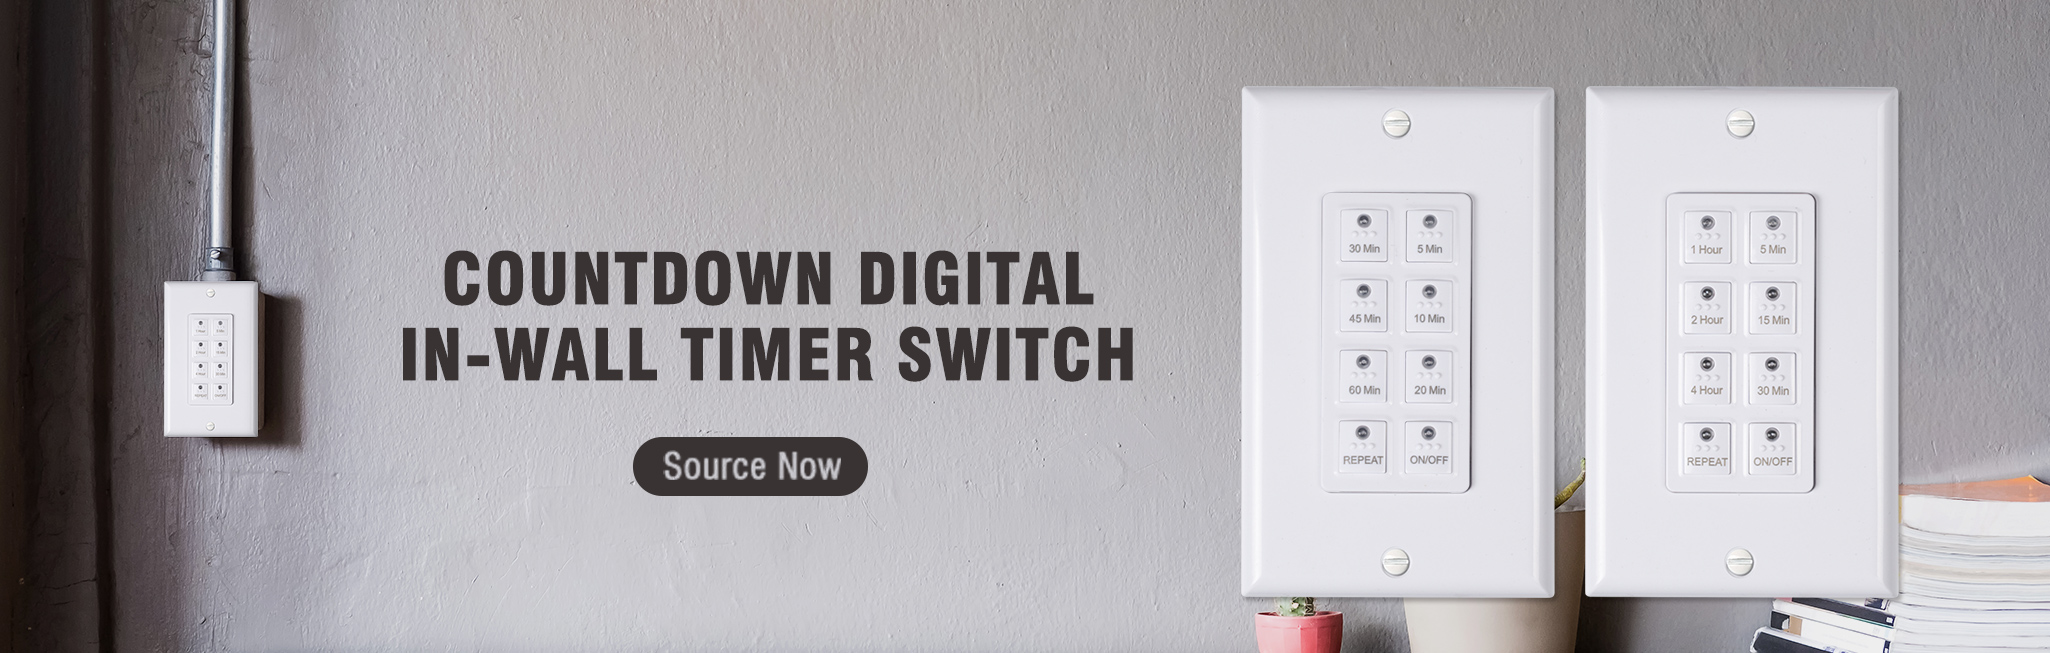 2050x653-in-wall-timer-banner